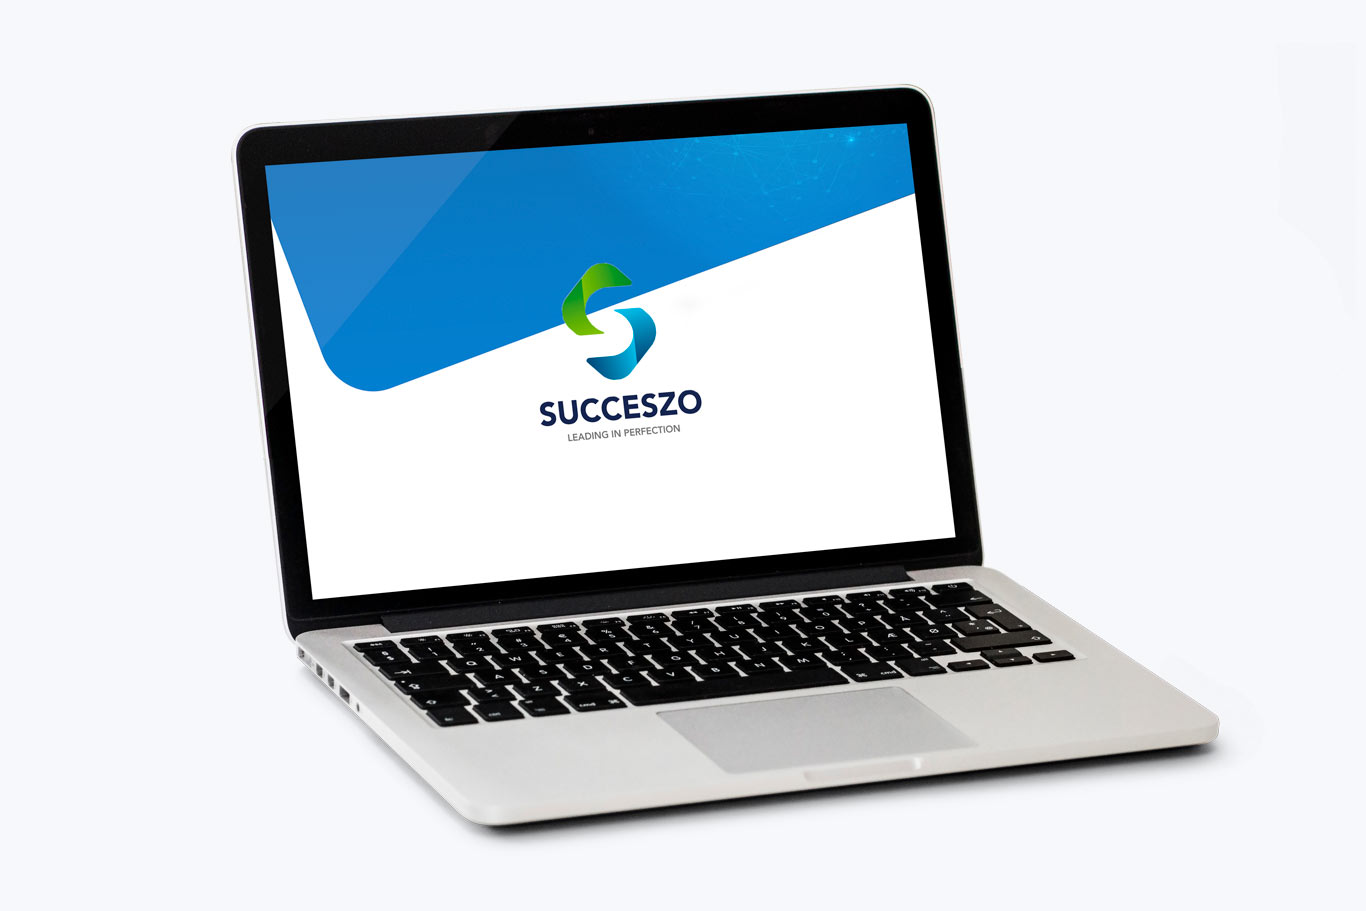 laptop met succeszo logo